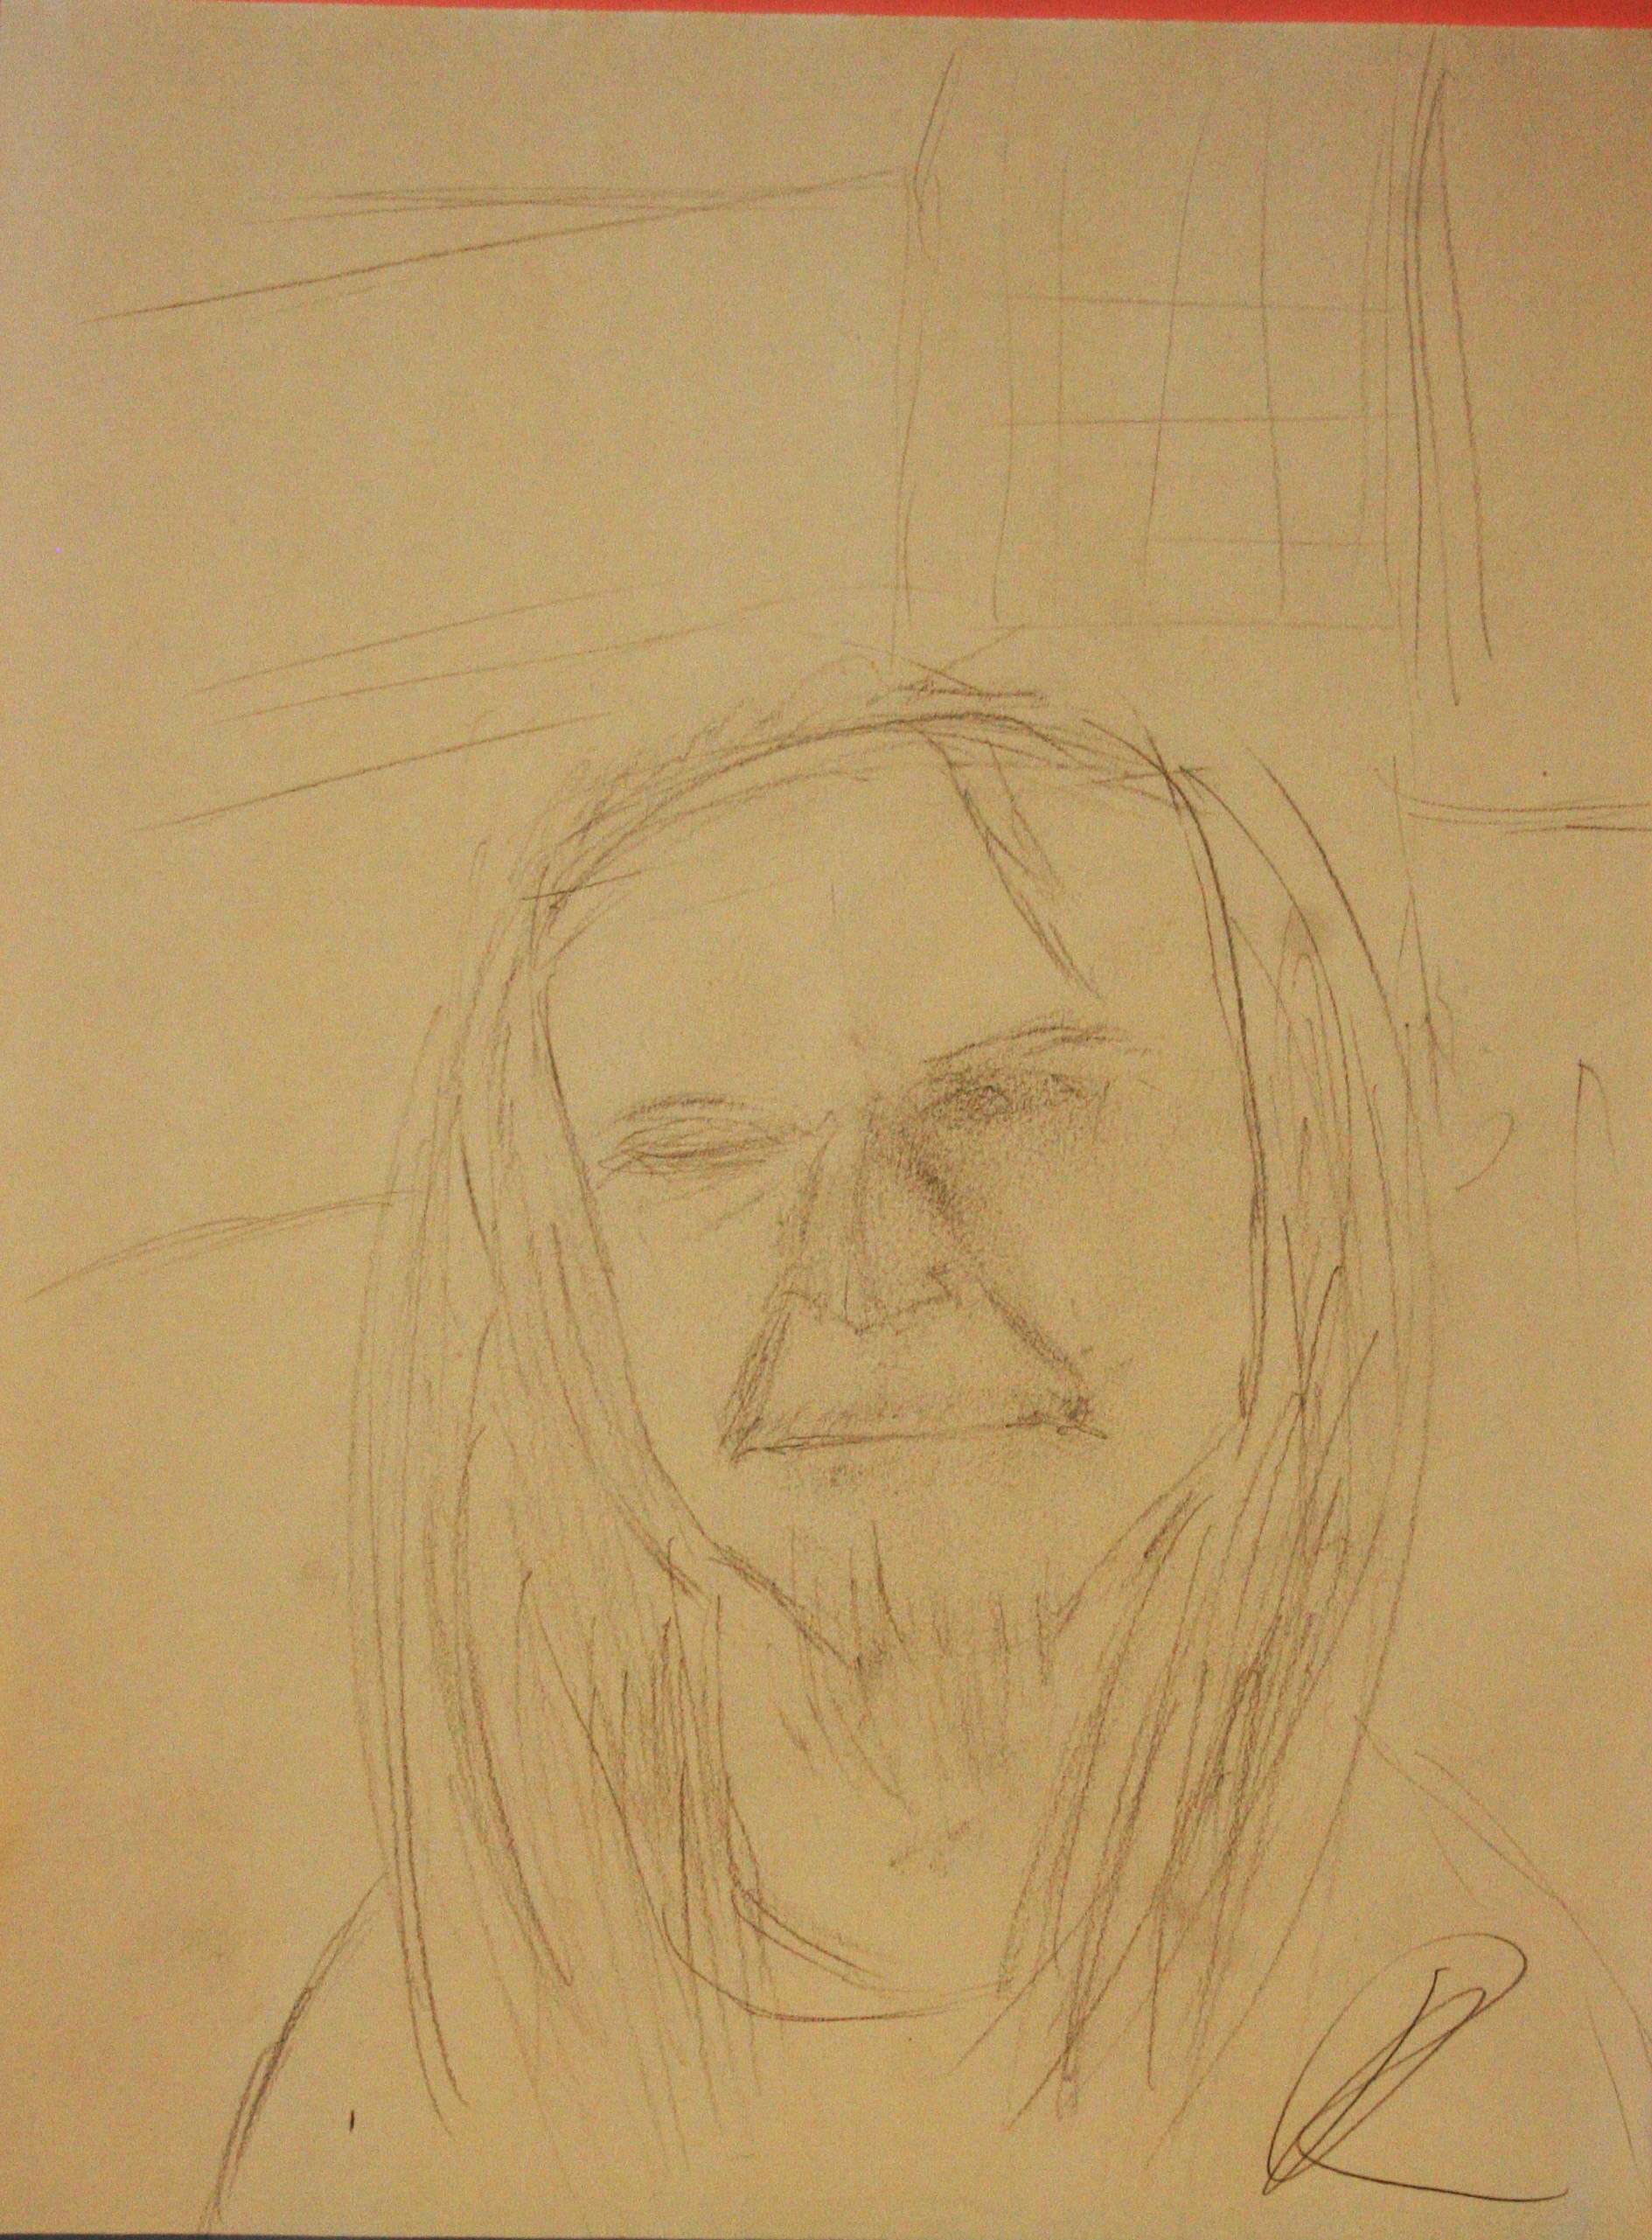 Paul Reulbach did this drawing.